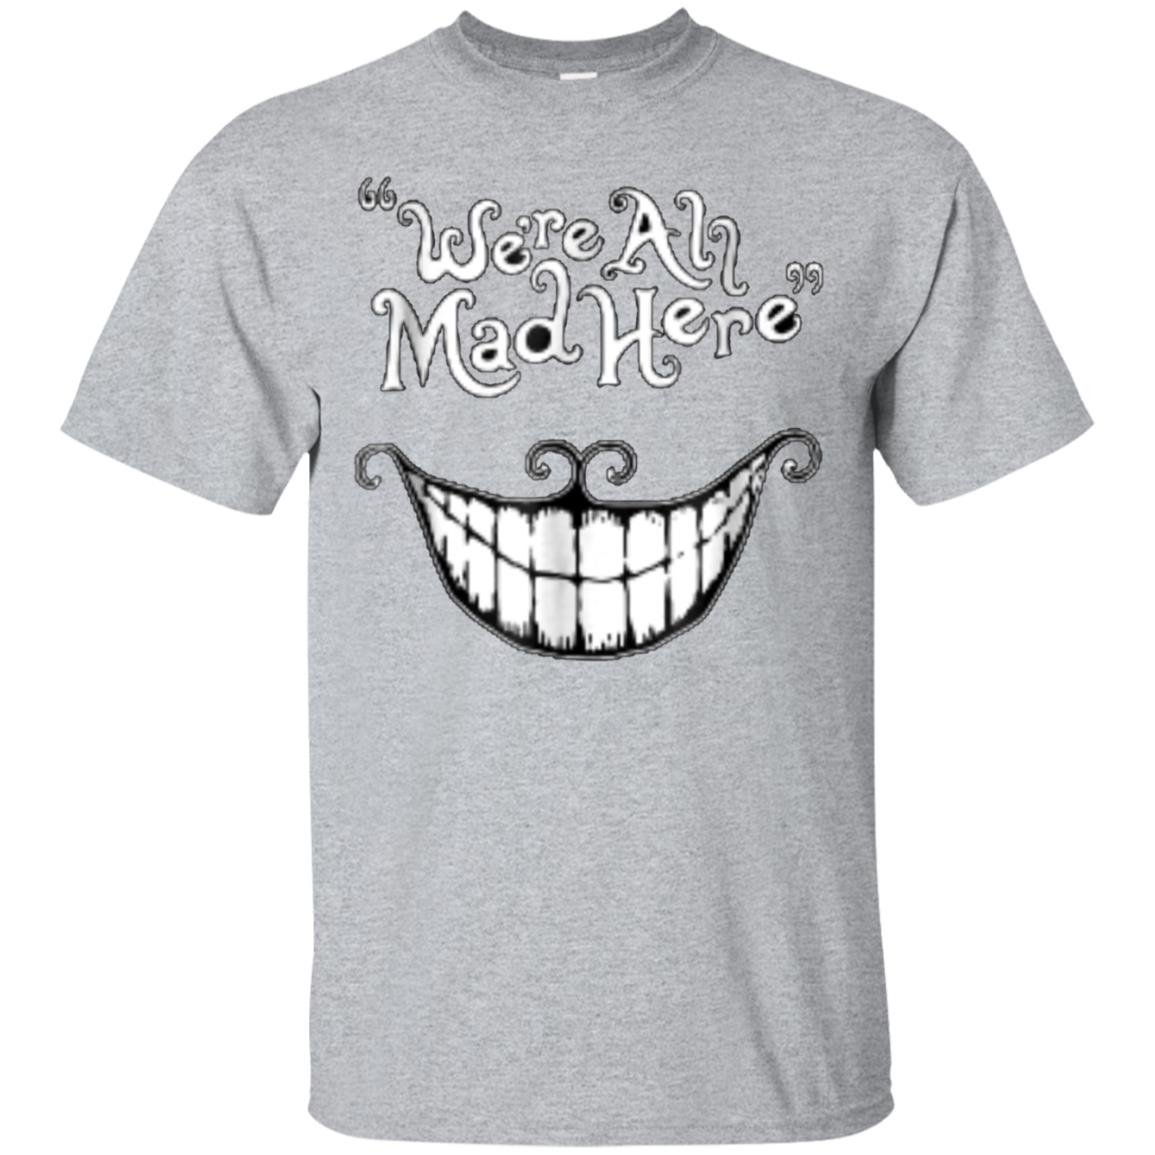 We're All Mad Here Graphic T-shirt 99promocode